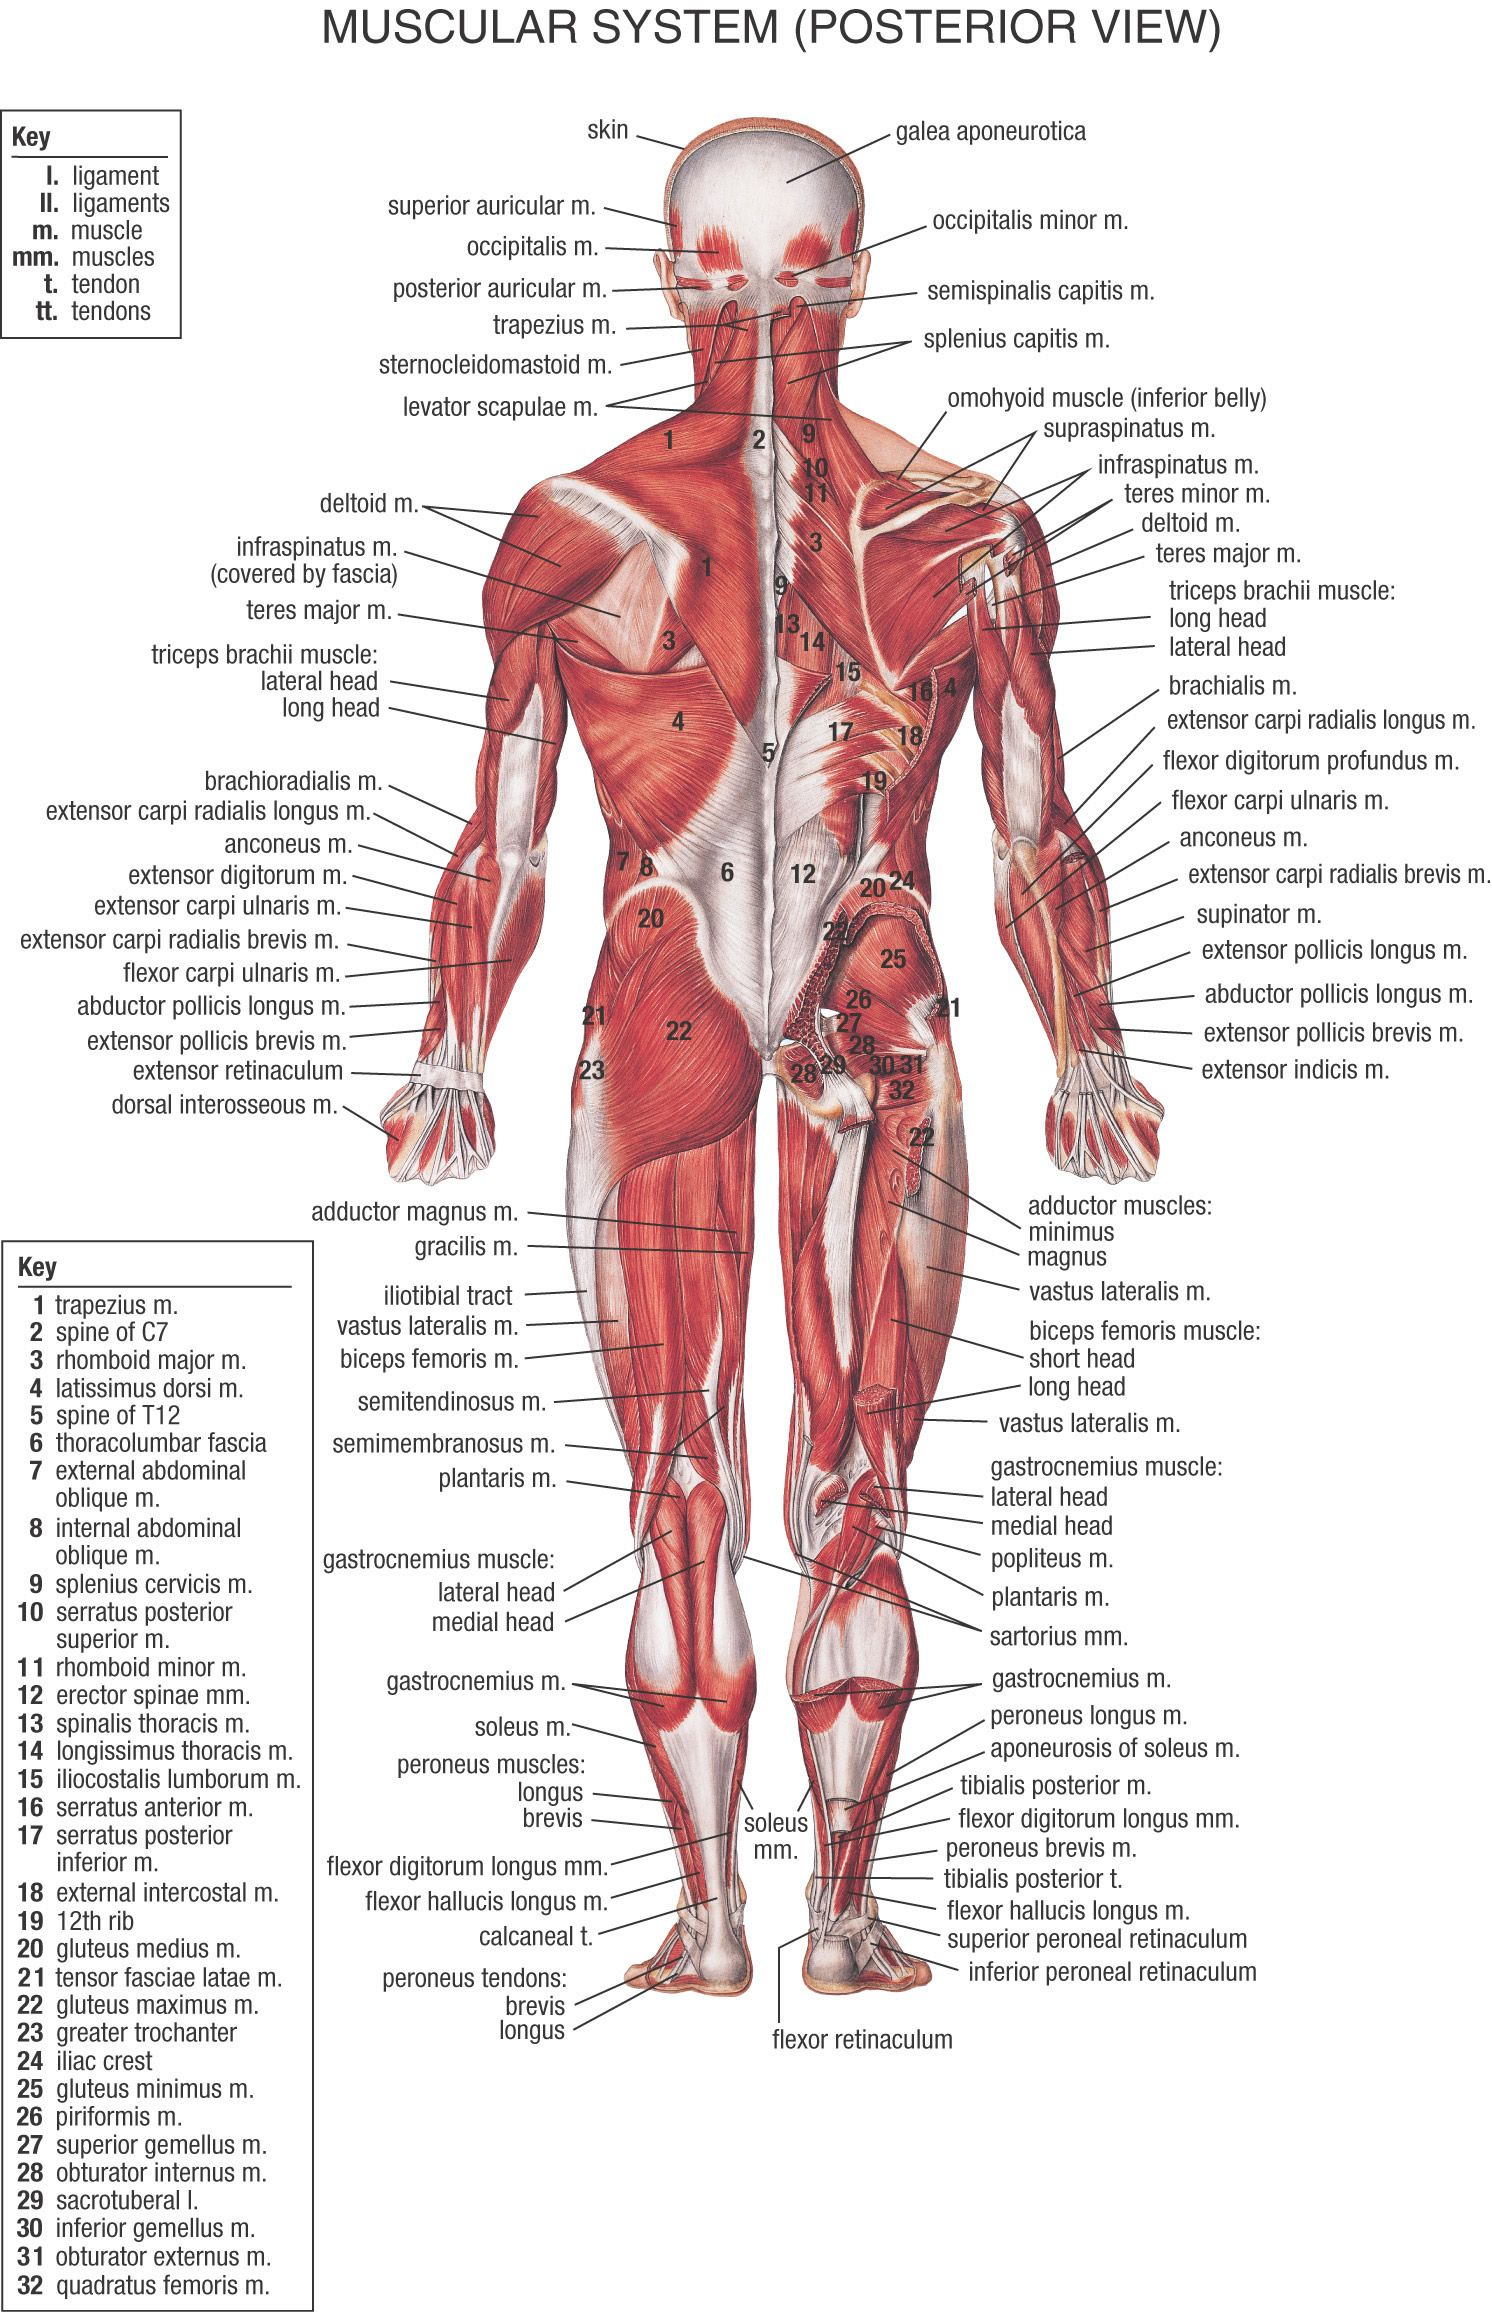 Hb Muscular System Posterior View Muscles In Fitness Pinterest